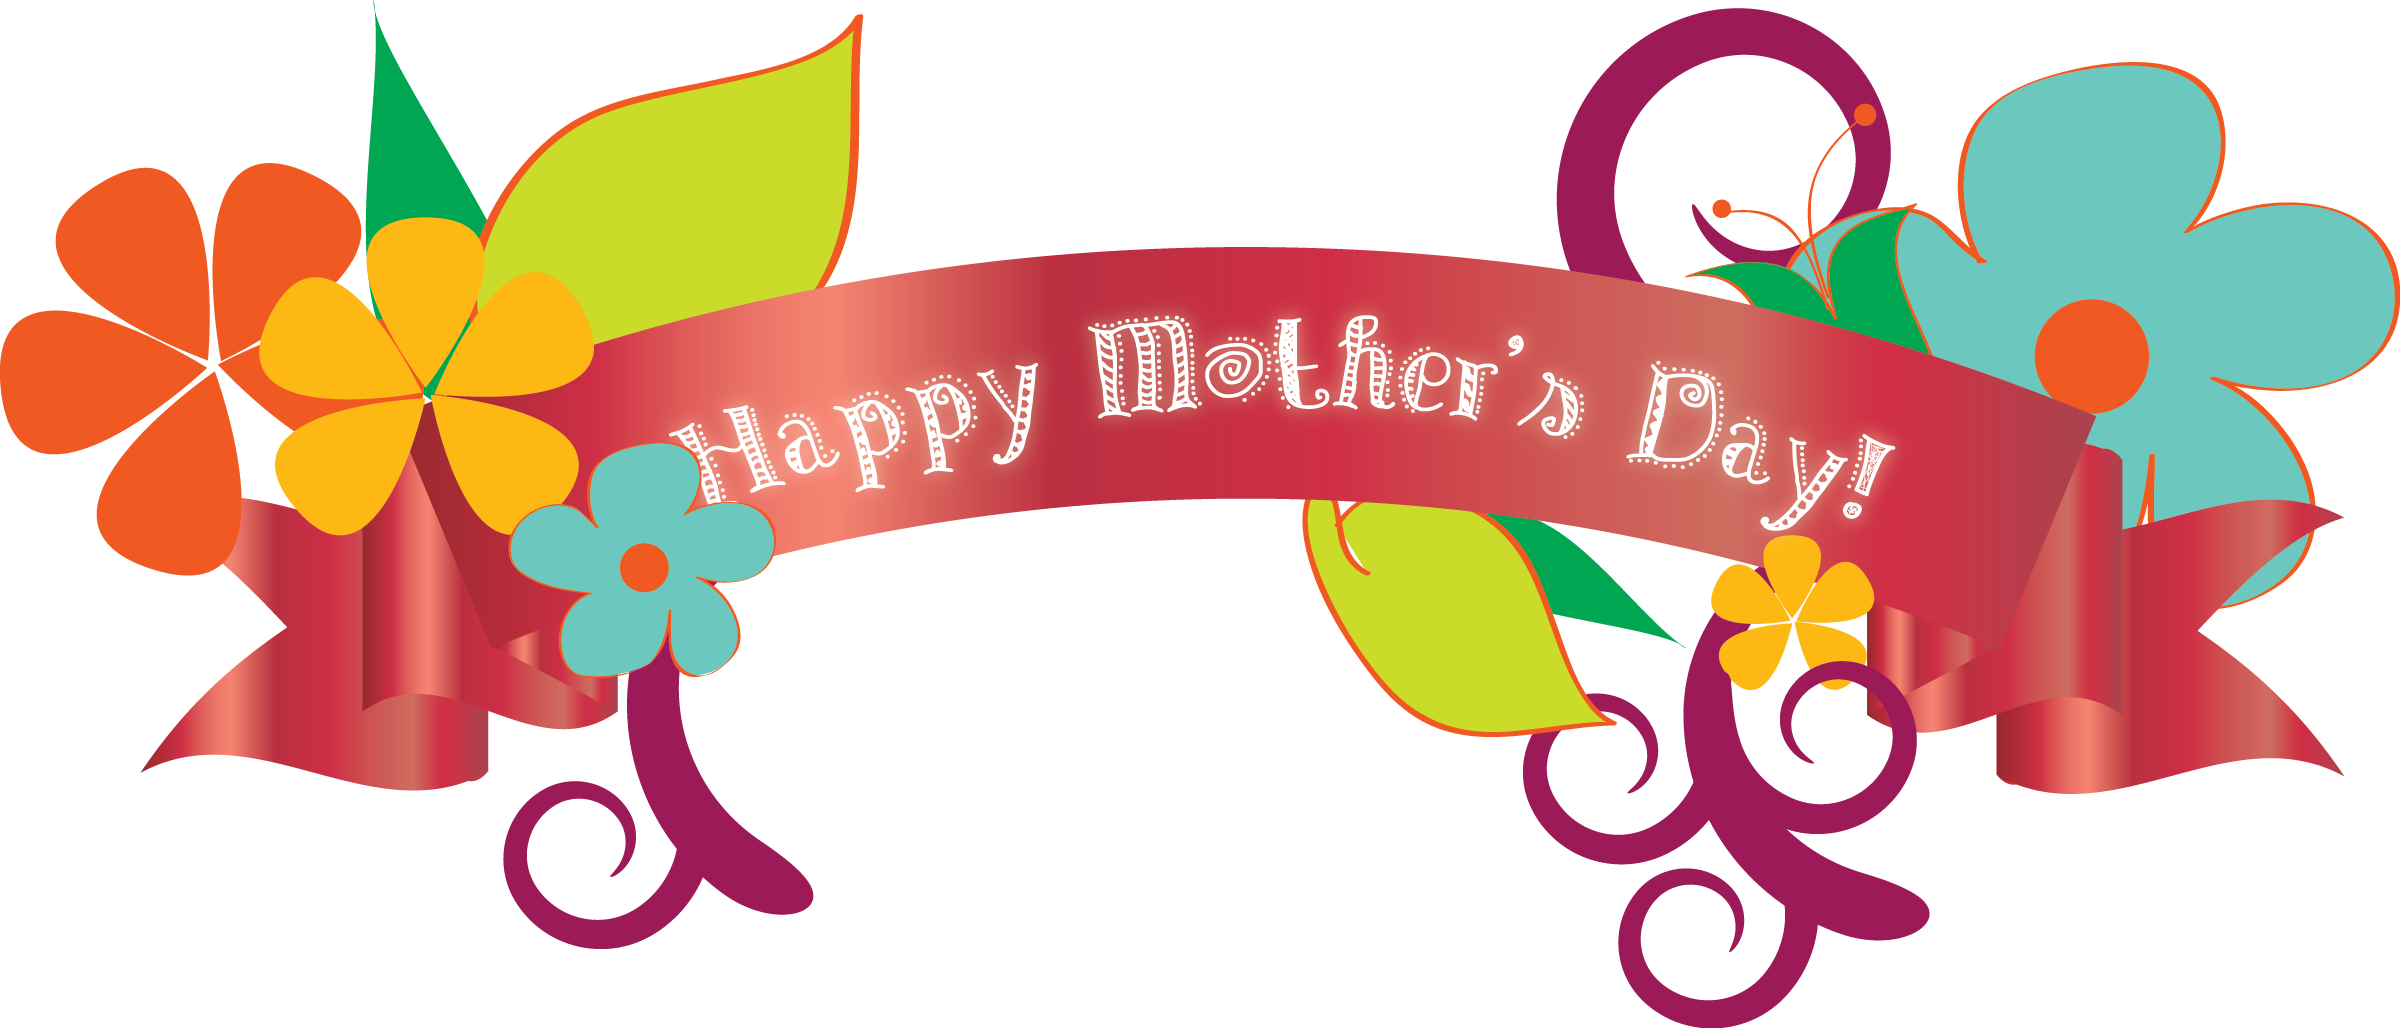 Mothers day banner png. Transparent pictures free icons